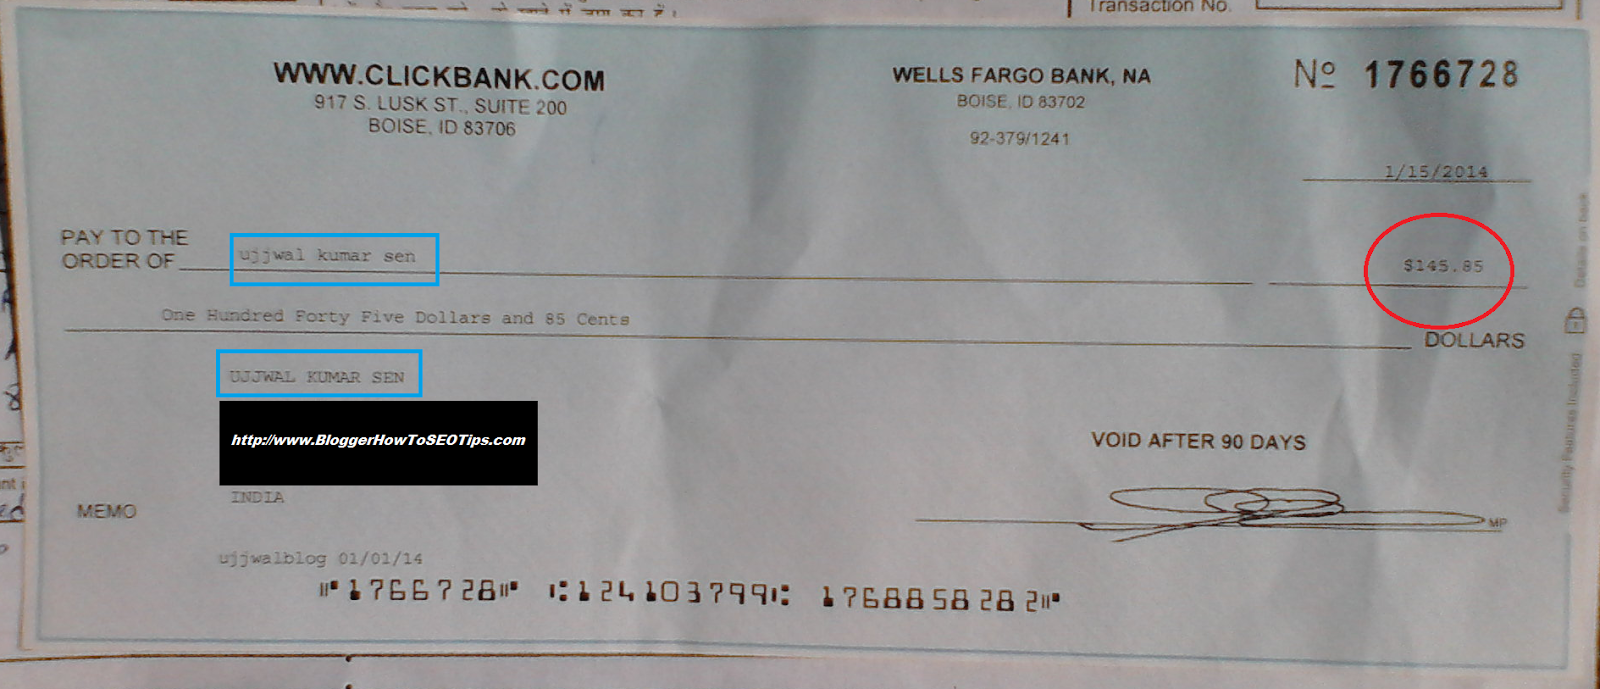 ClickBank Cheque India